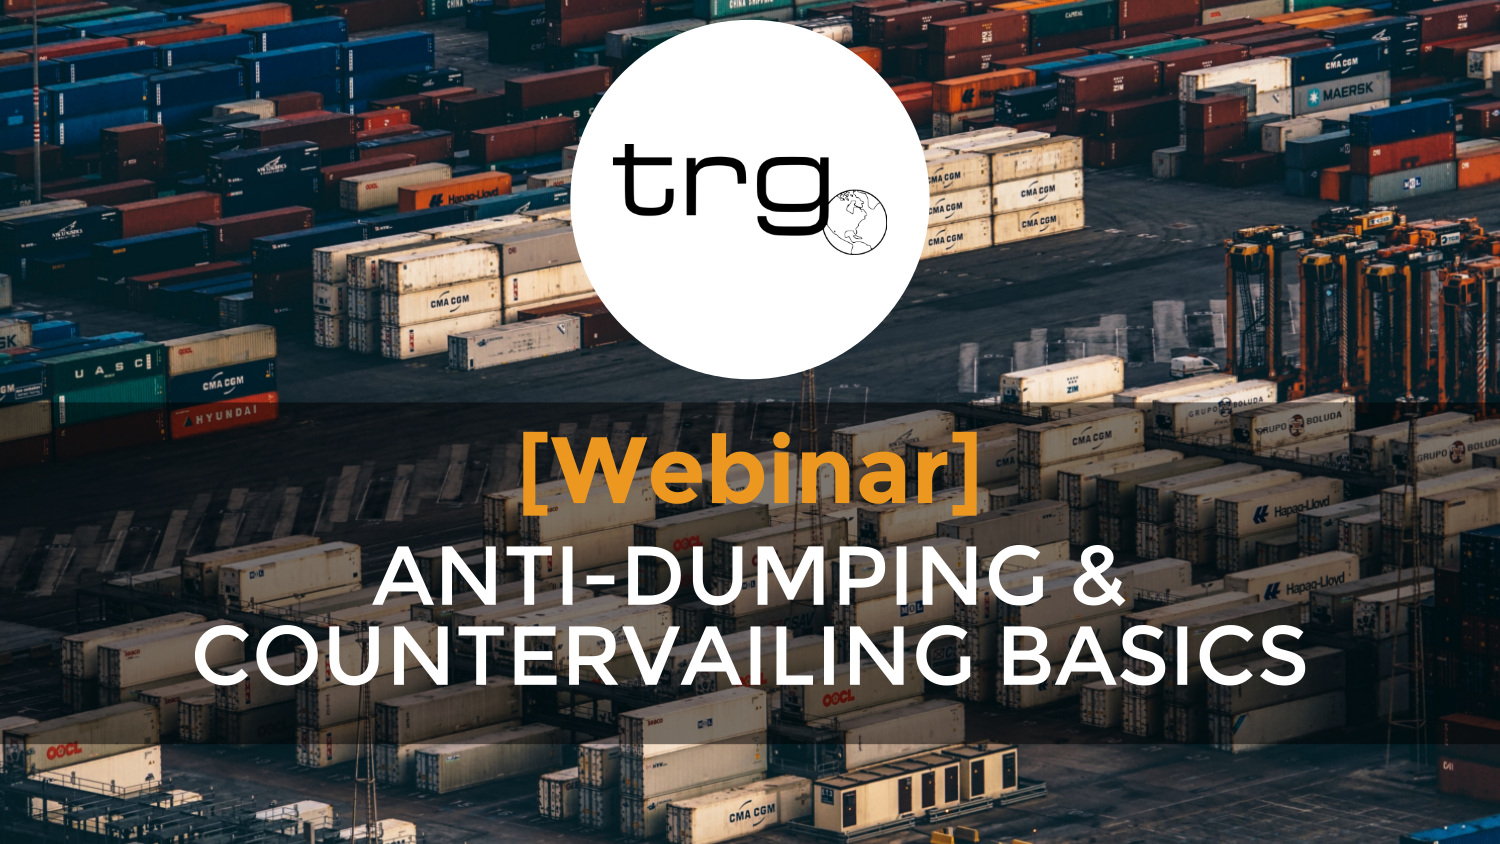 [Webinar] The Basics of Antidumping and Countervailing